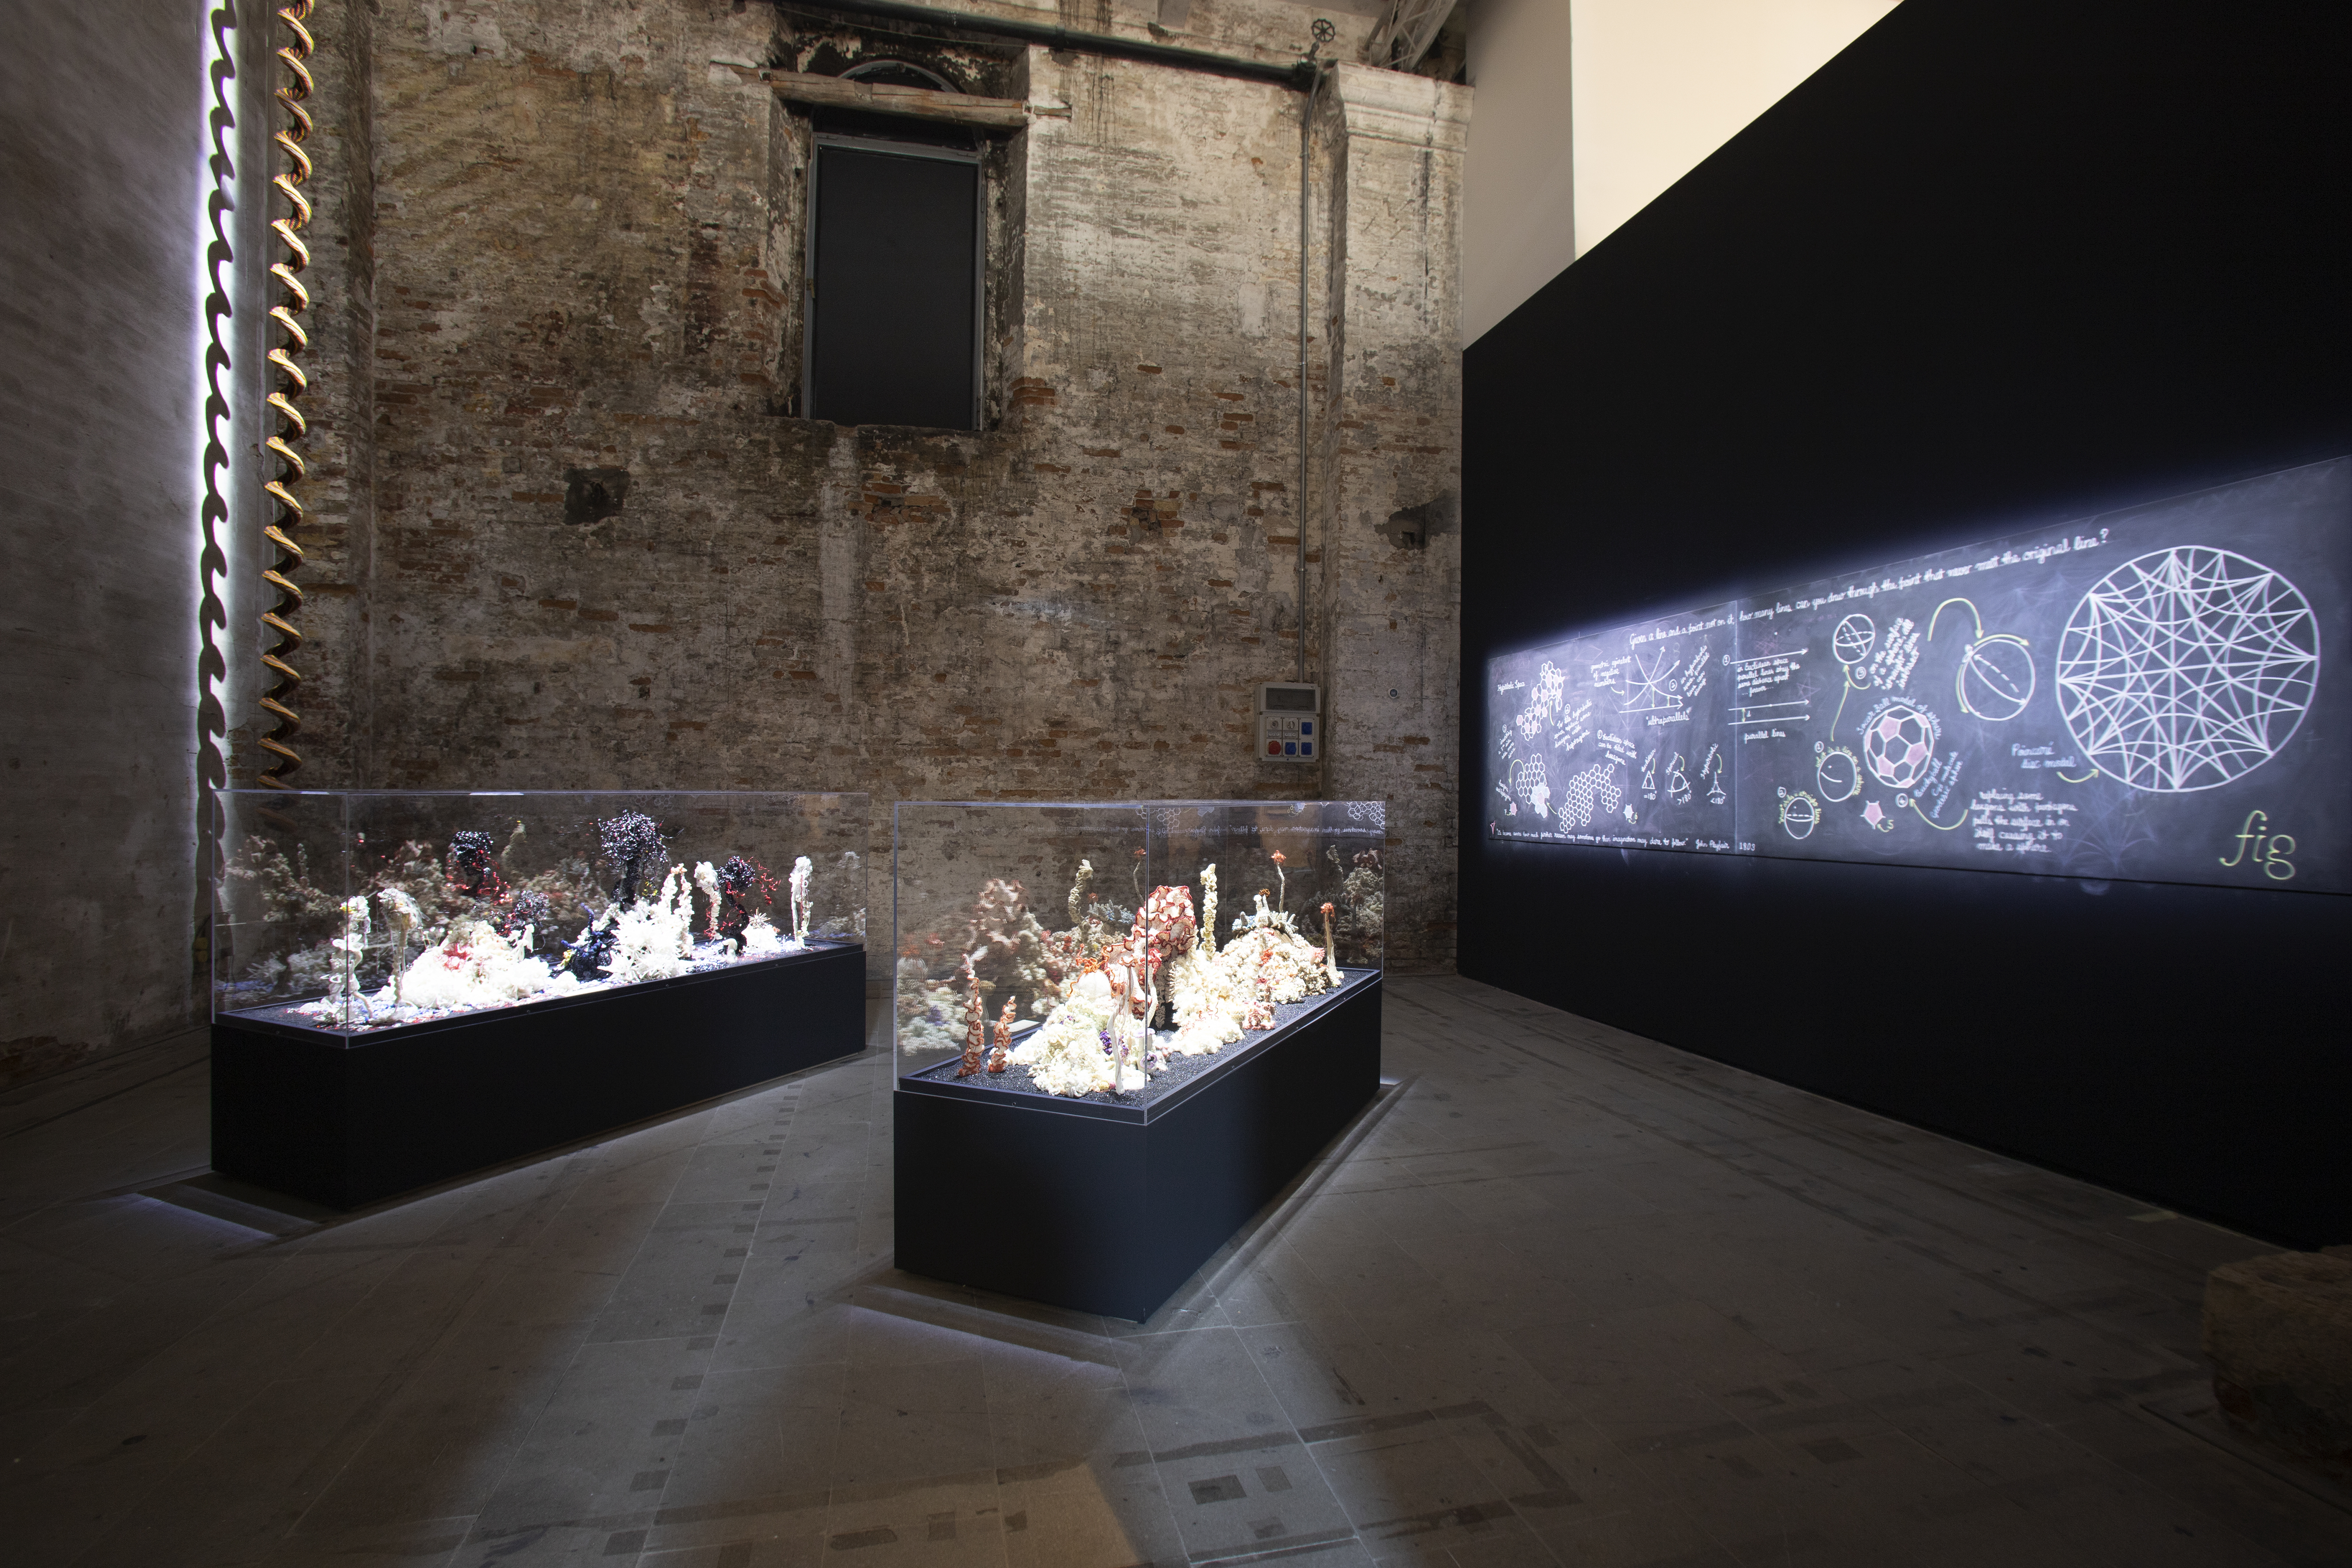 At the Venice Biennale, Artists Create Their Own Truths in